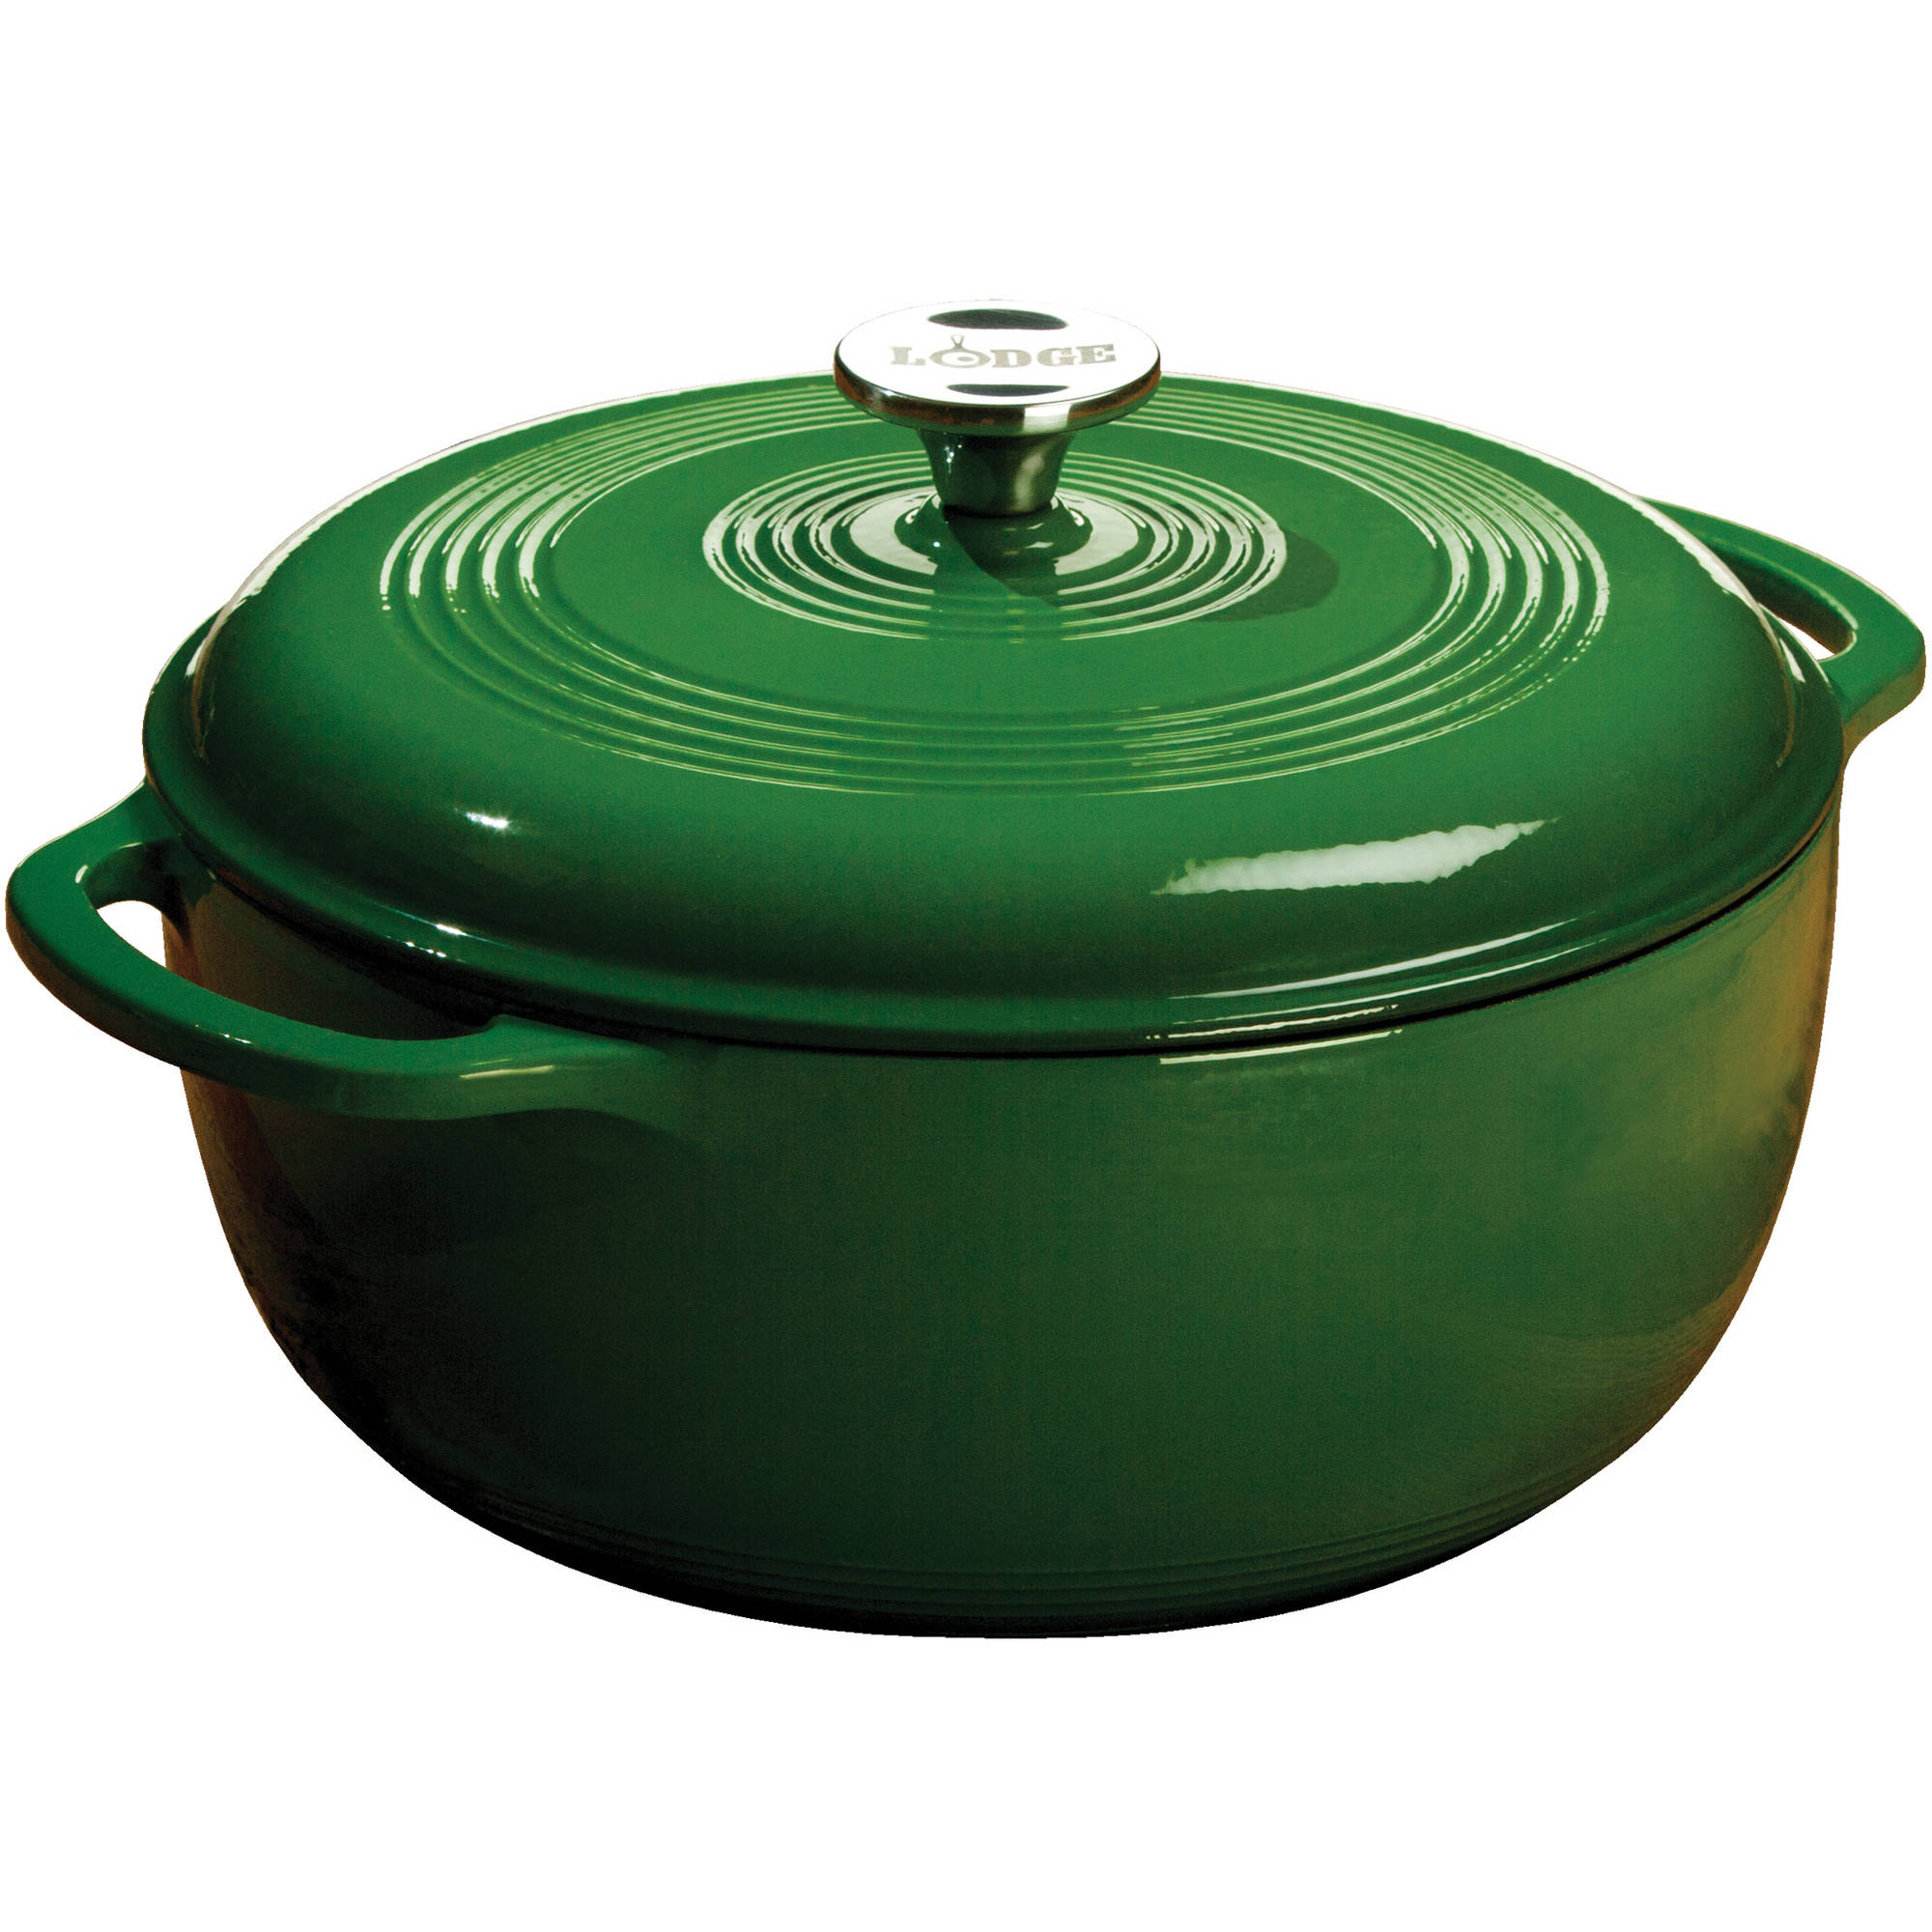 Lodge Enameled Cast Iron 6 Quart Dutch Oven Assorted